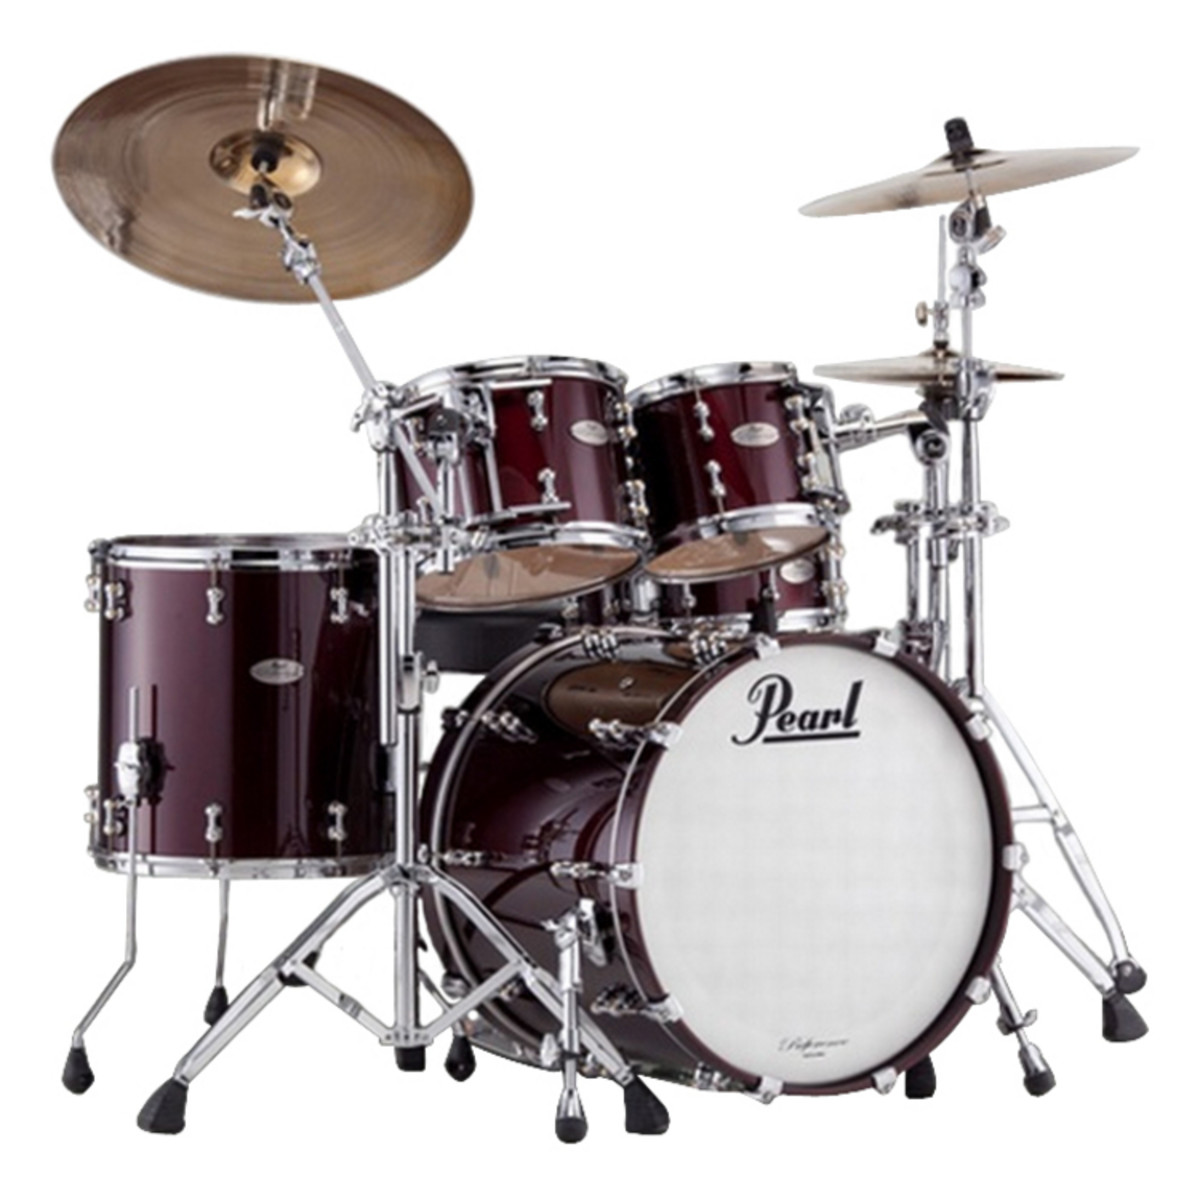 pearl reference pure drum kit at gear4music. Black Bedroom Furniture Sets. Home Design Ideas